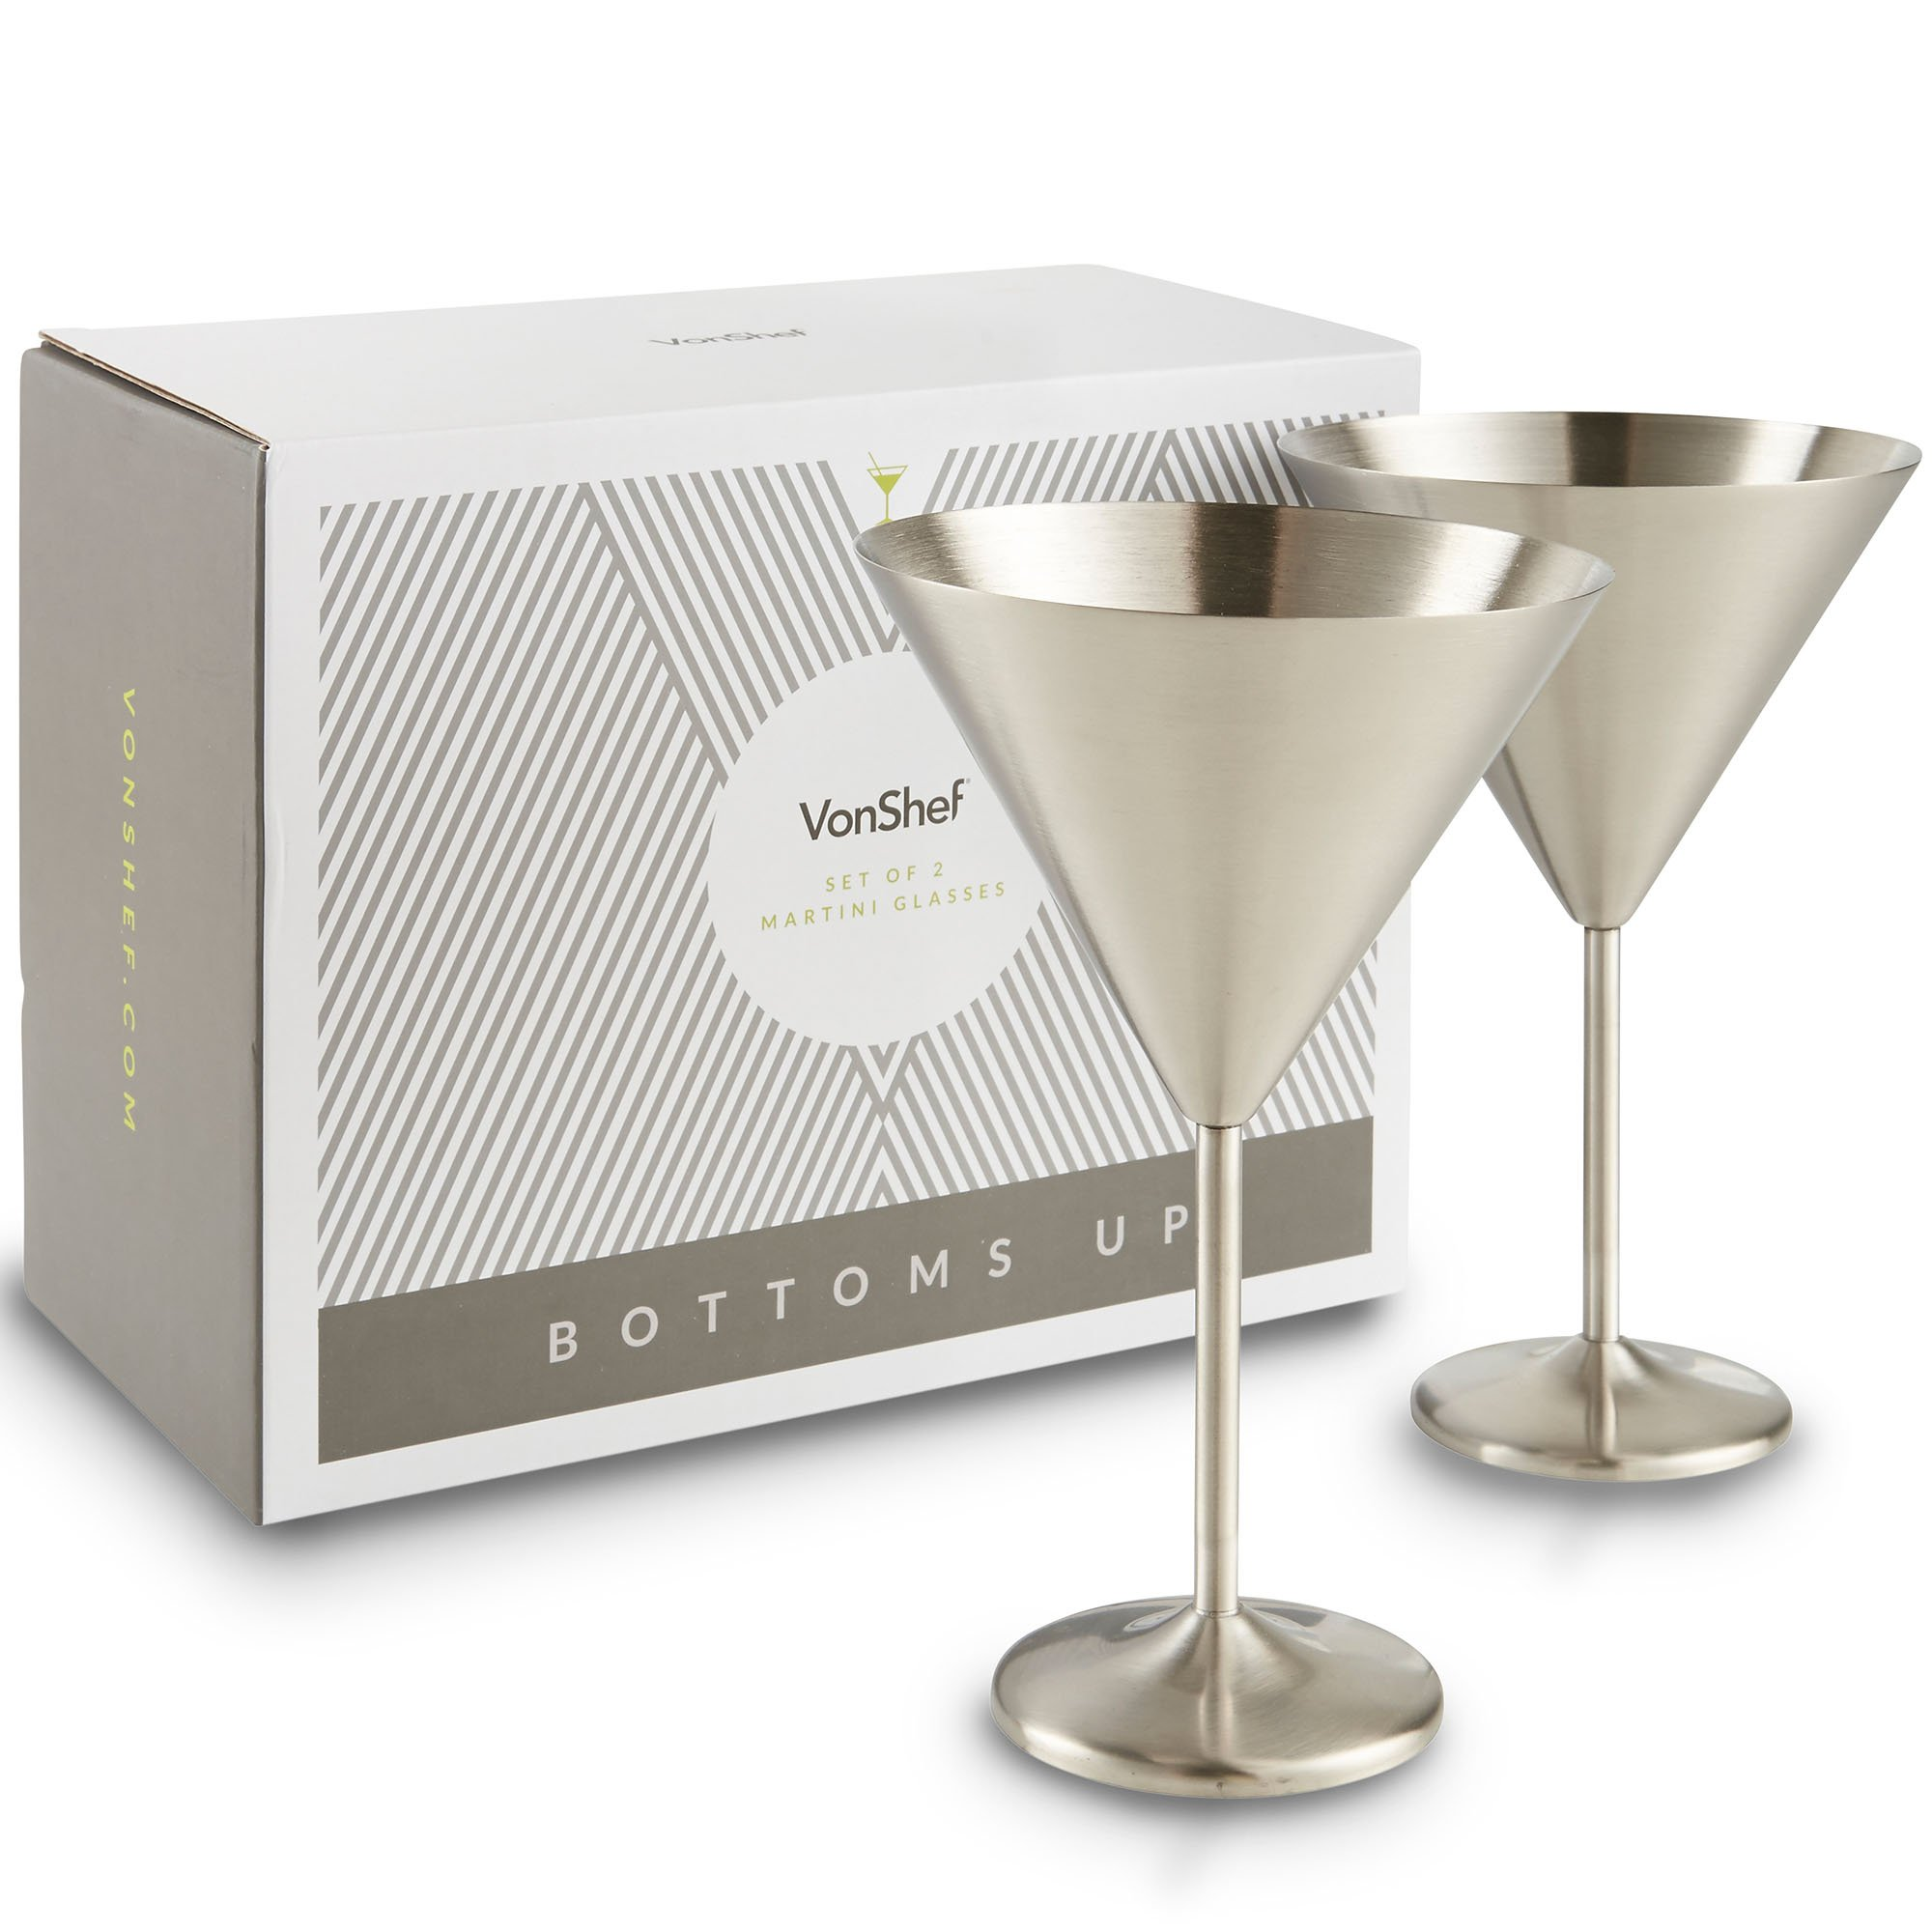 VonShef Large Martini Cocktail Glasses Set, Silver Brushed Stainless Steel, Set of 2